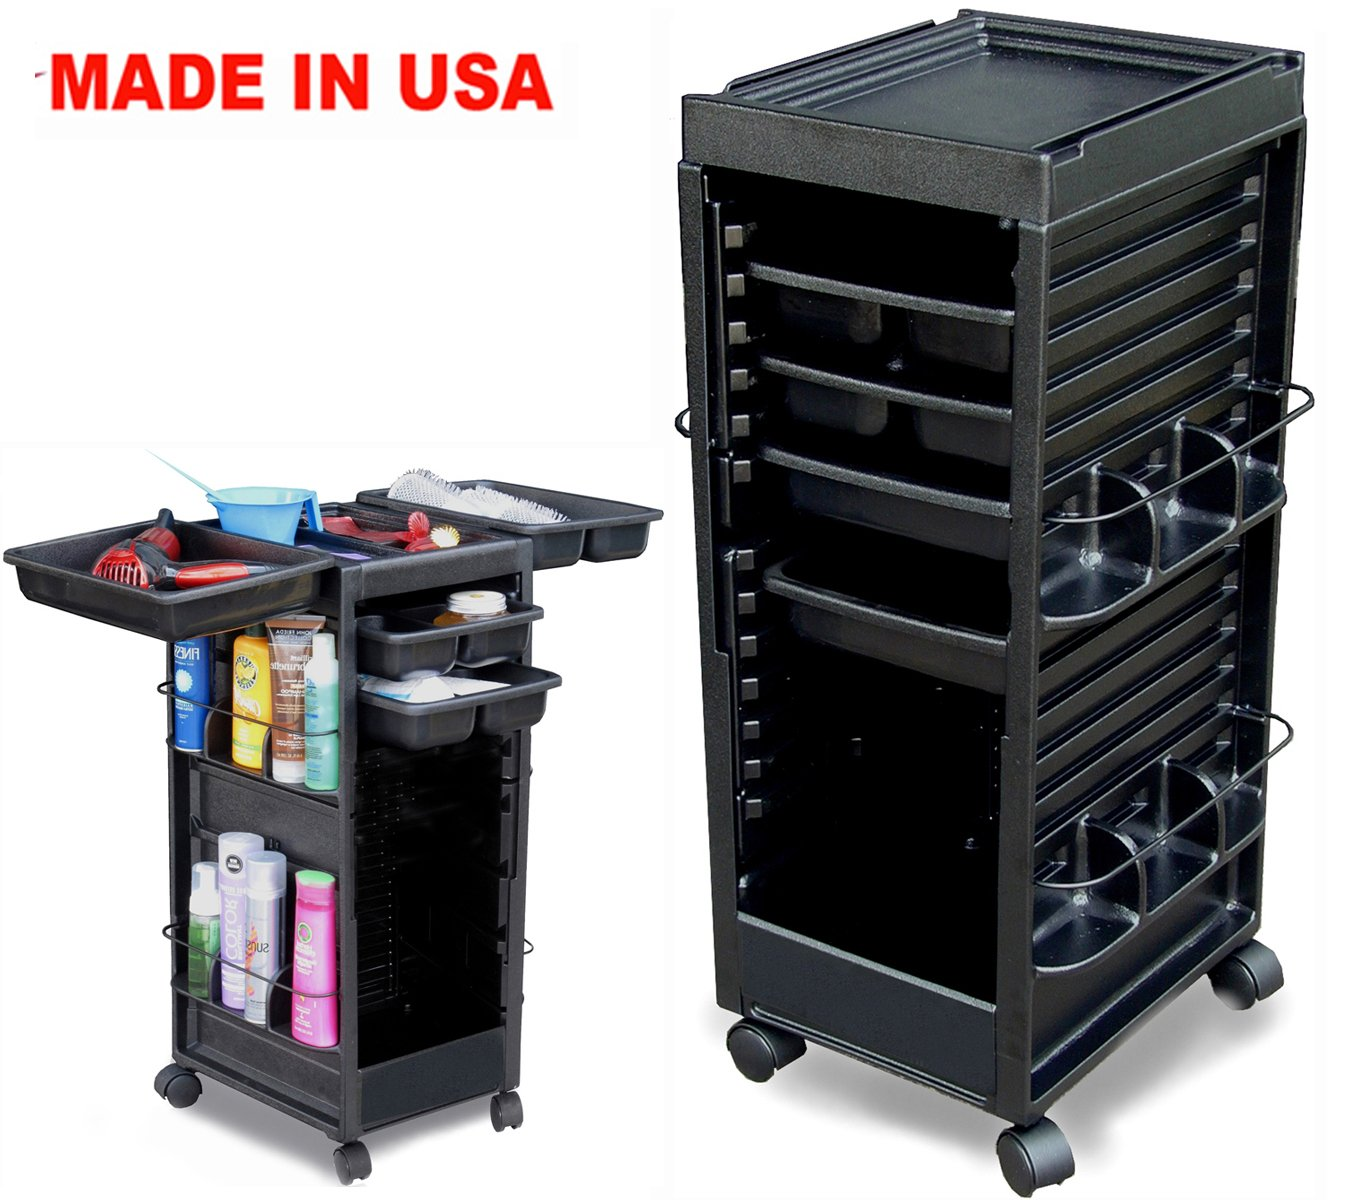 N20 PRIME SALON SPA TROLLEY ROLLING ROLL-ABOUT NON LOCKABLE MADE IN USA Dina Meri